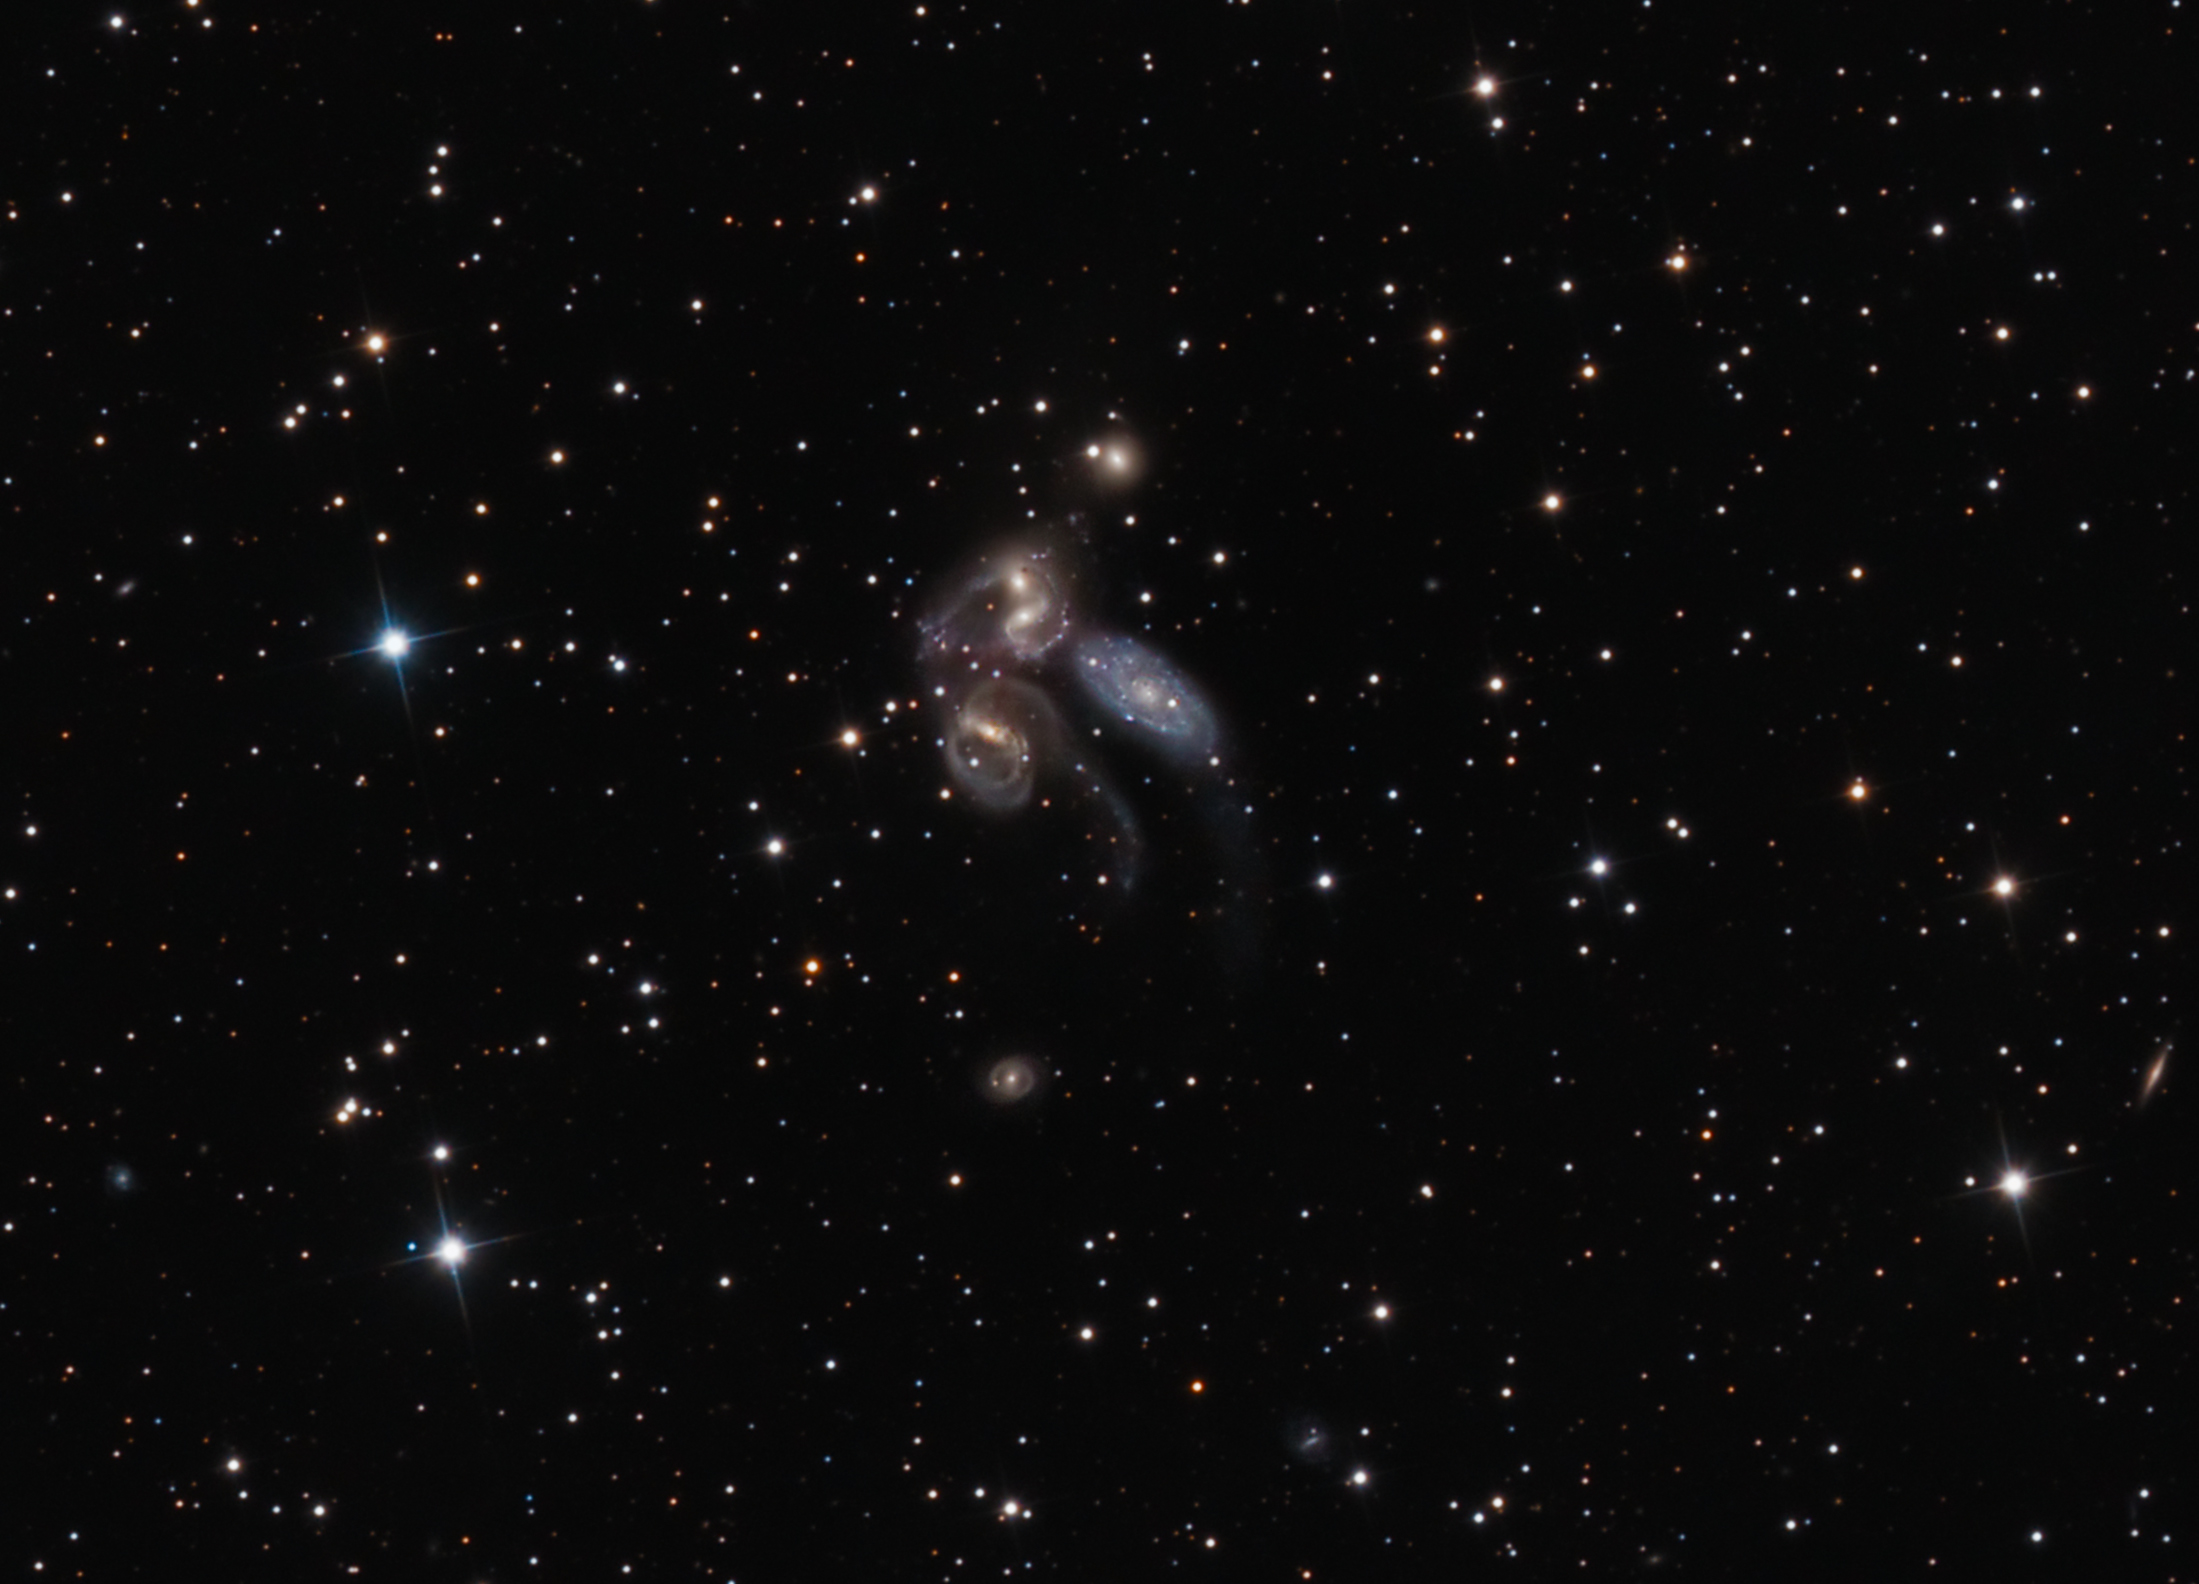 S And B Filters >> Stephan's Quintet